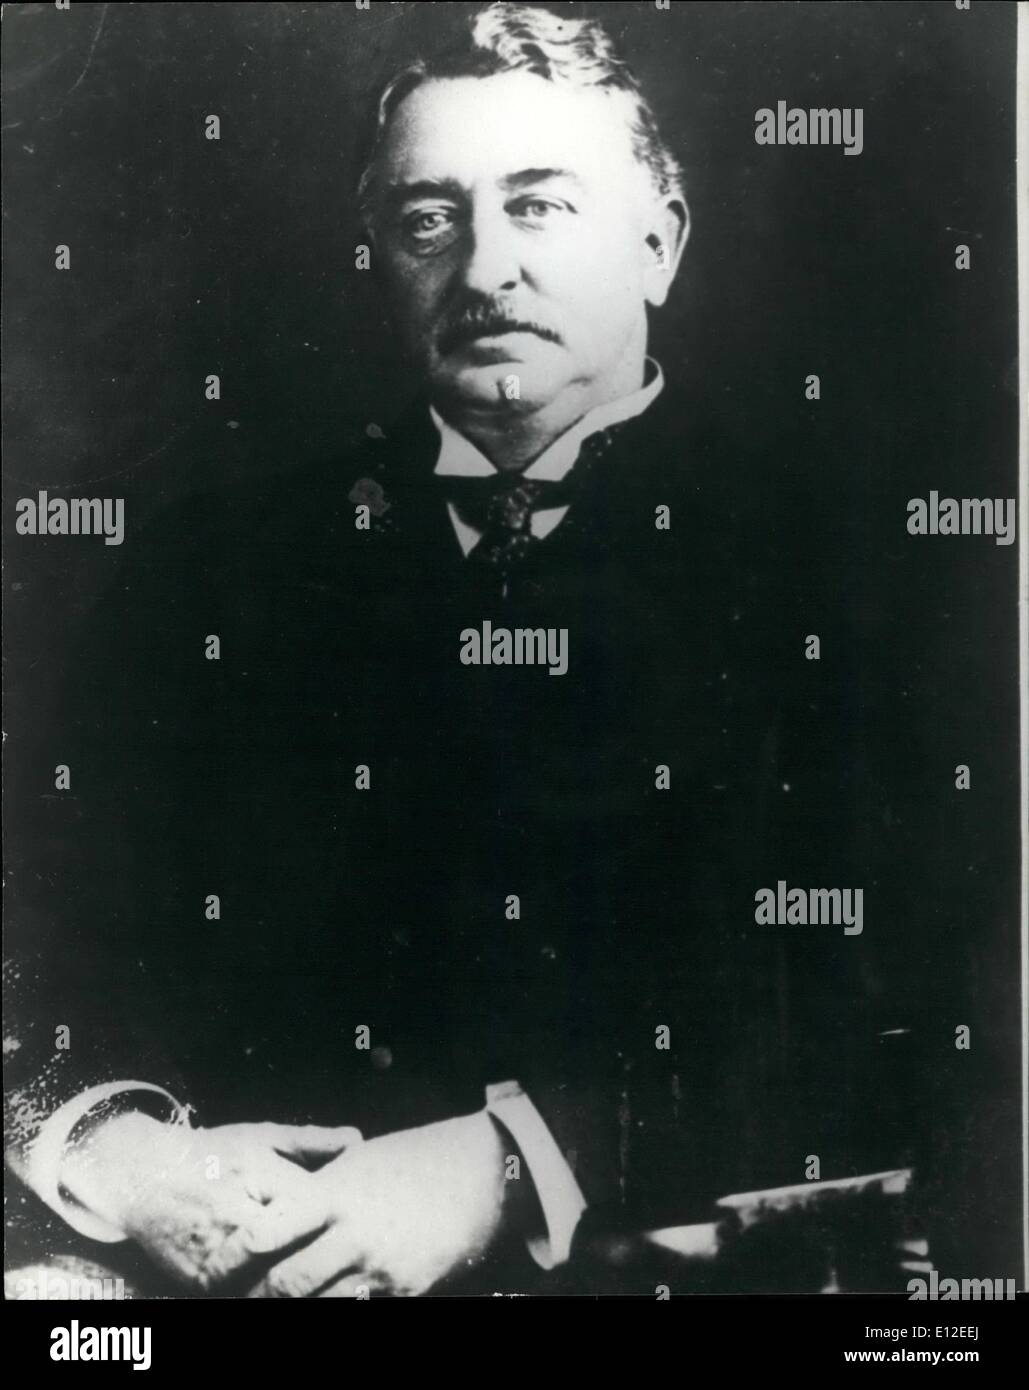 Dec. 20, 2011 - Cecil John Rhodes founder of the diamond company De Beers - Stock Image